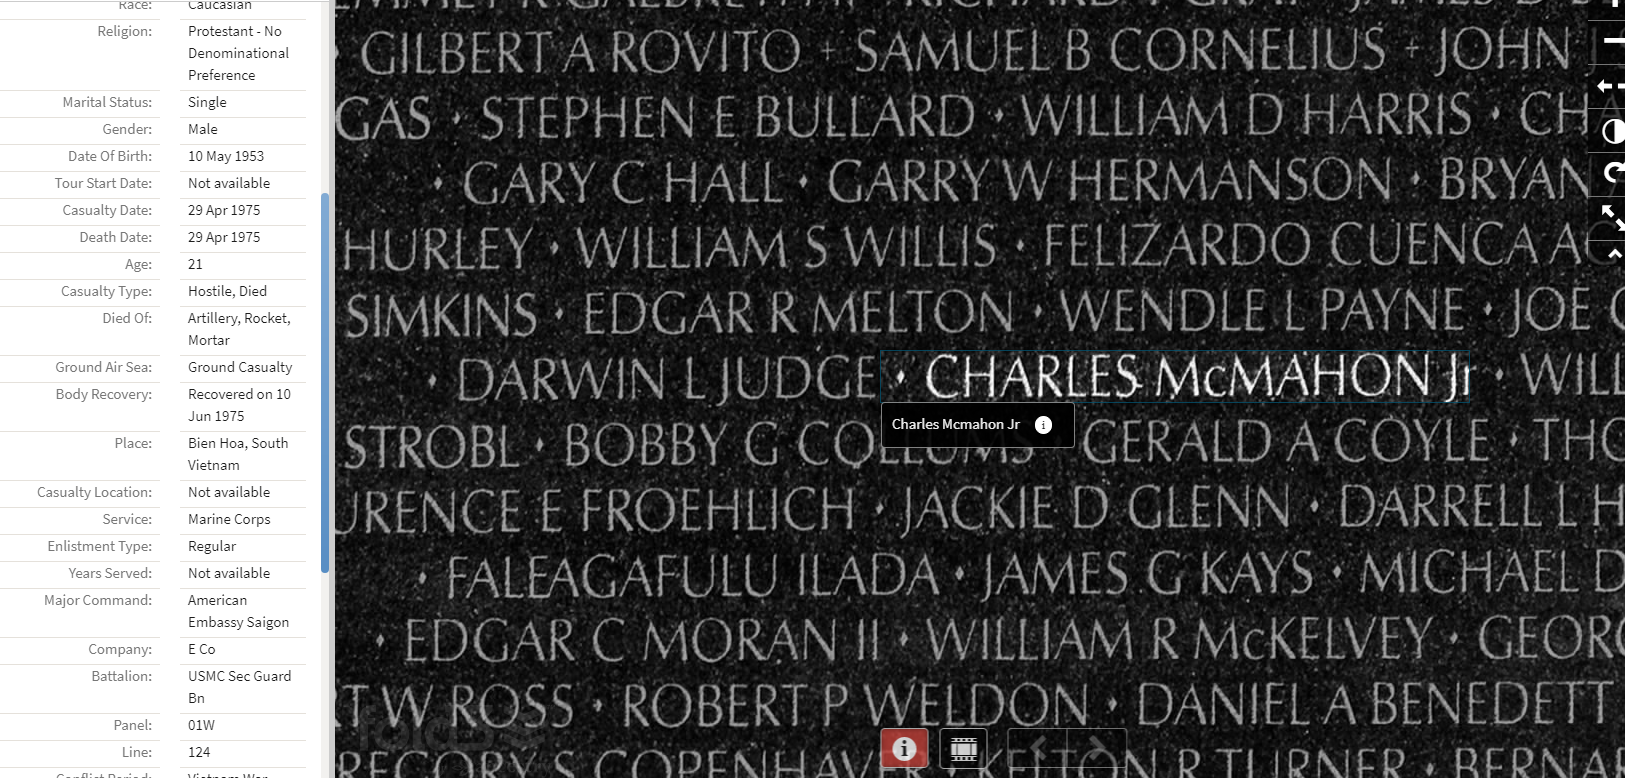 Image of Vietnam Memorial Wall, highlighting the name Charles McMahon Jr.